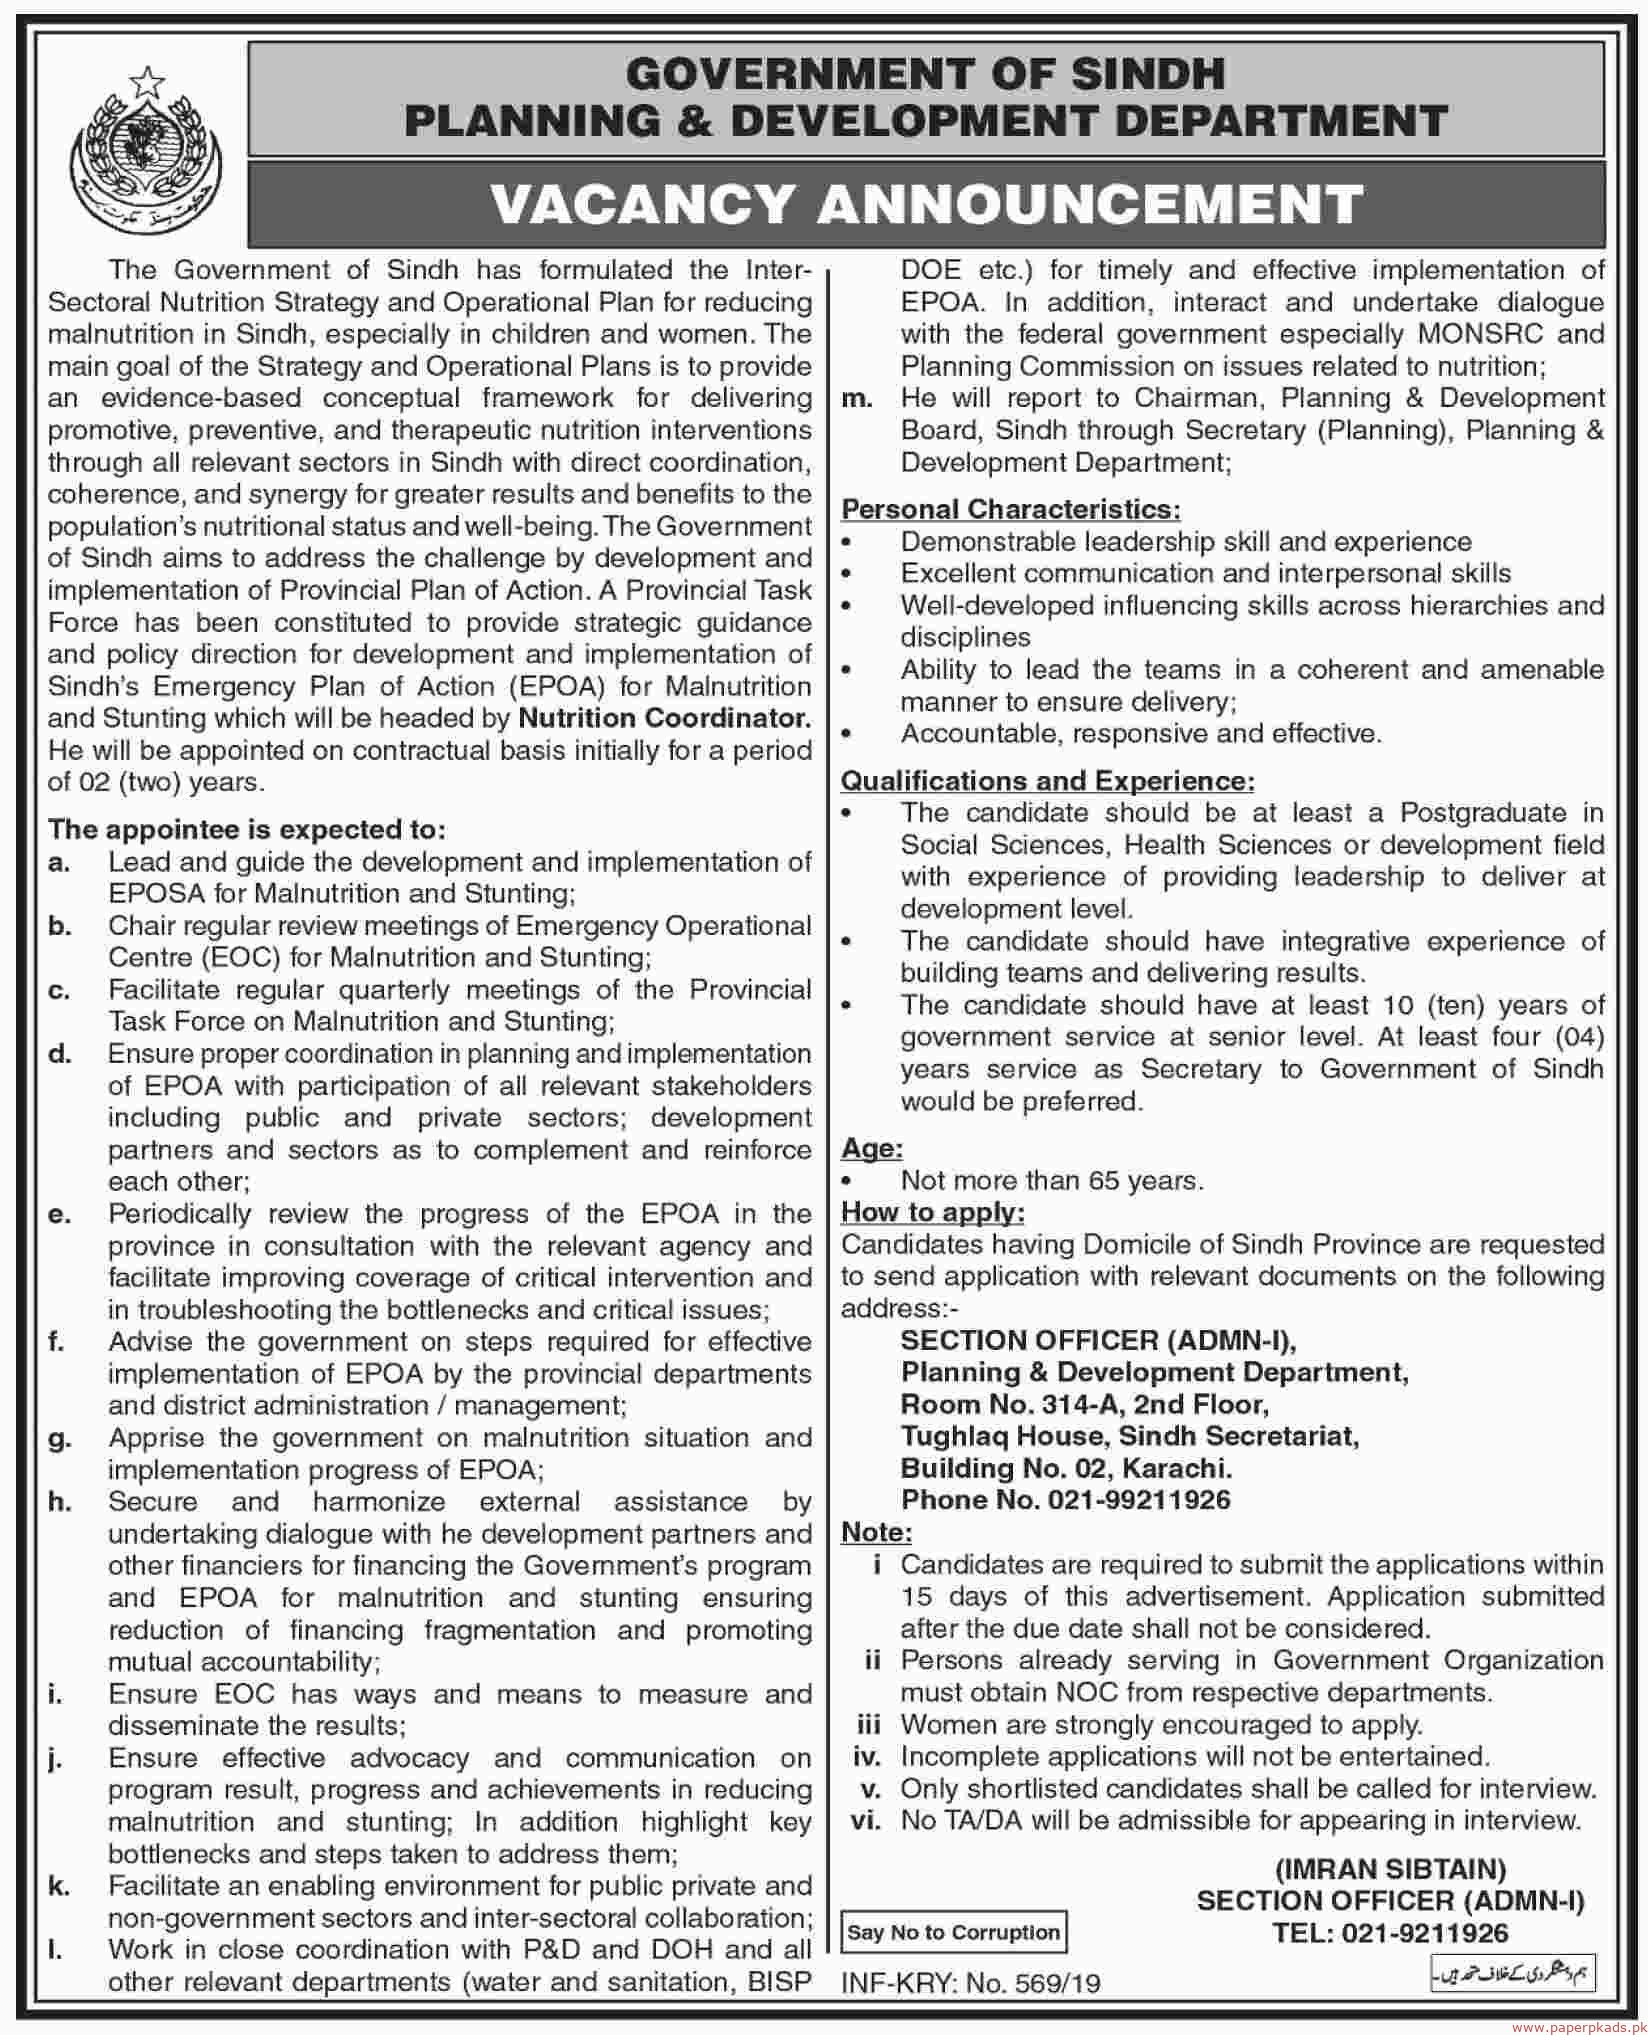 Planning & Development Department - Government of Sindh Jobs 2019 Latest